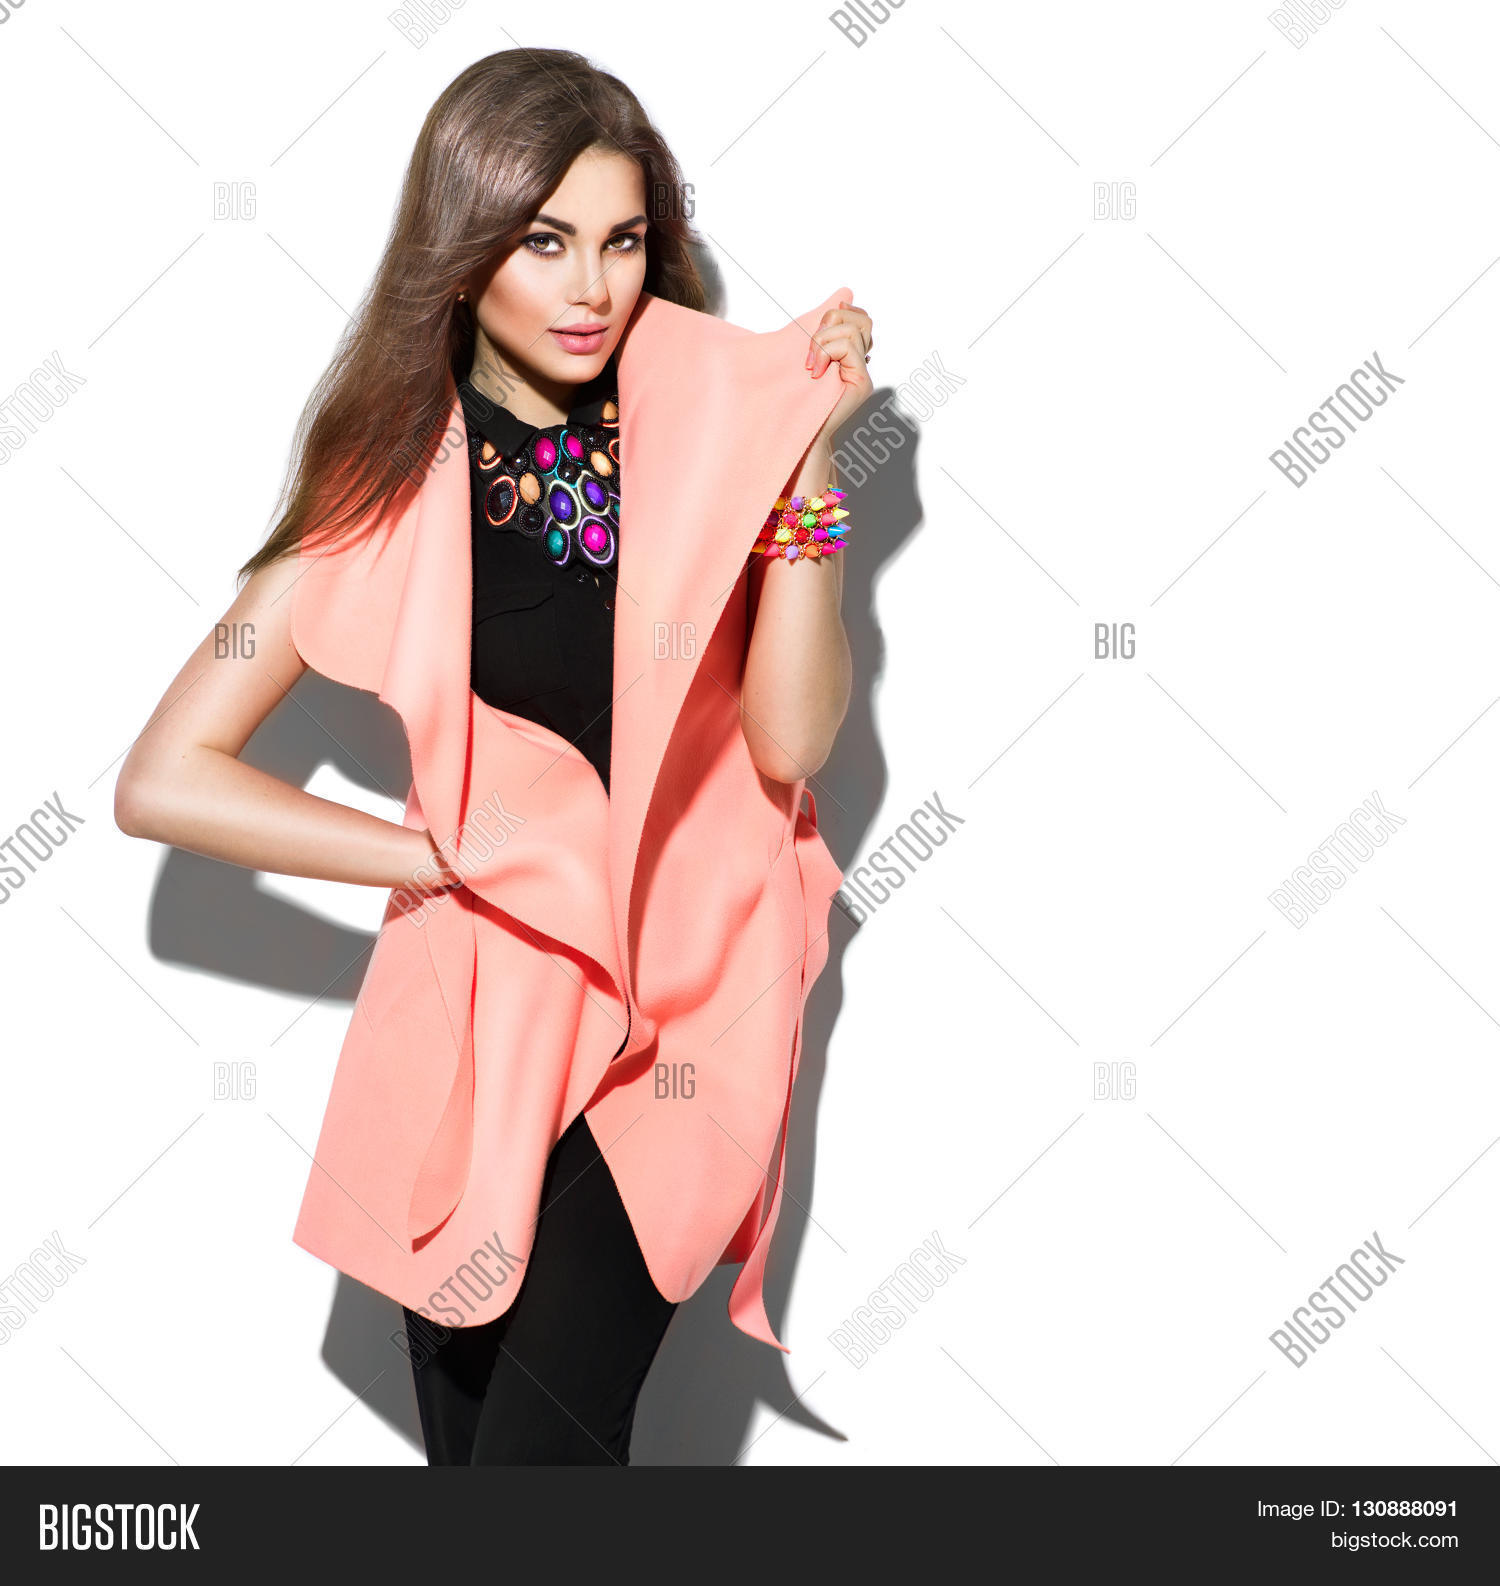 556bf44f048 Fashion Model girl isolated over white background. Beauty stylish brunette  woman posing in fashionable clothes